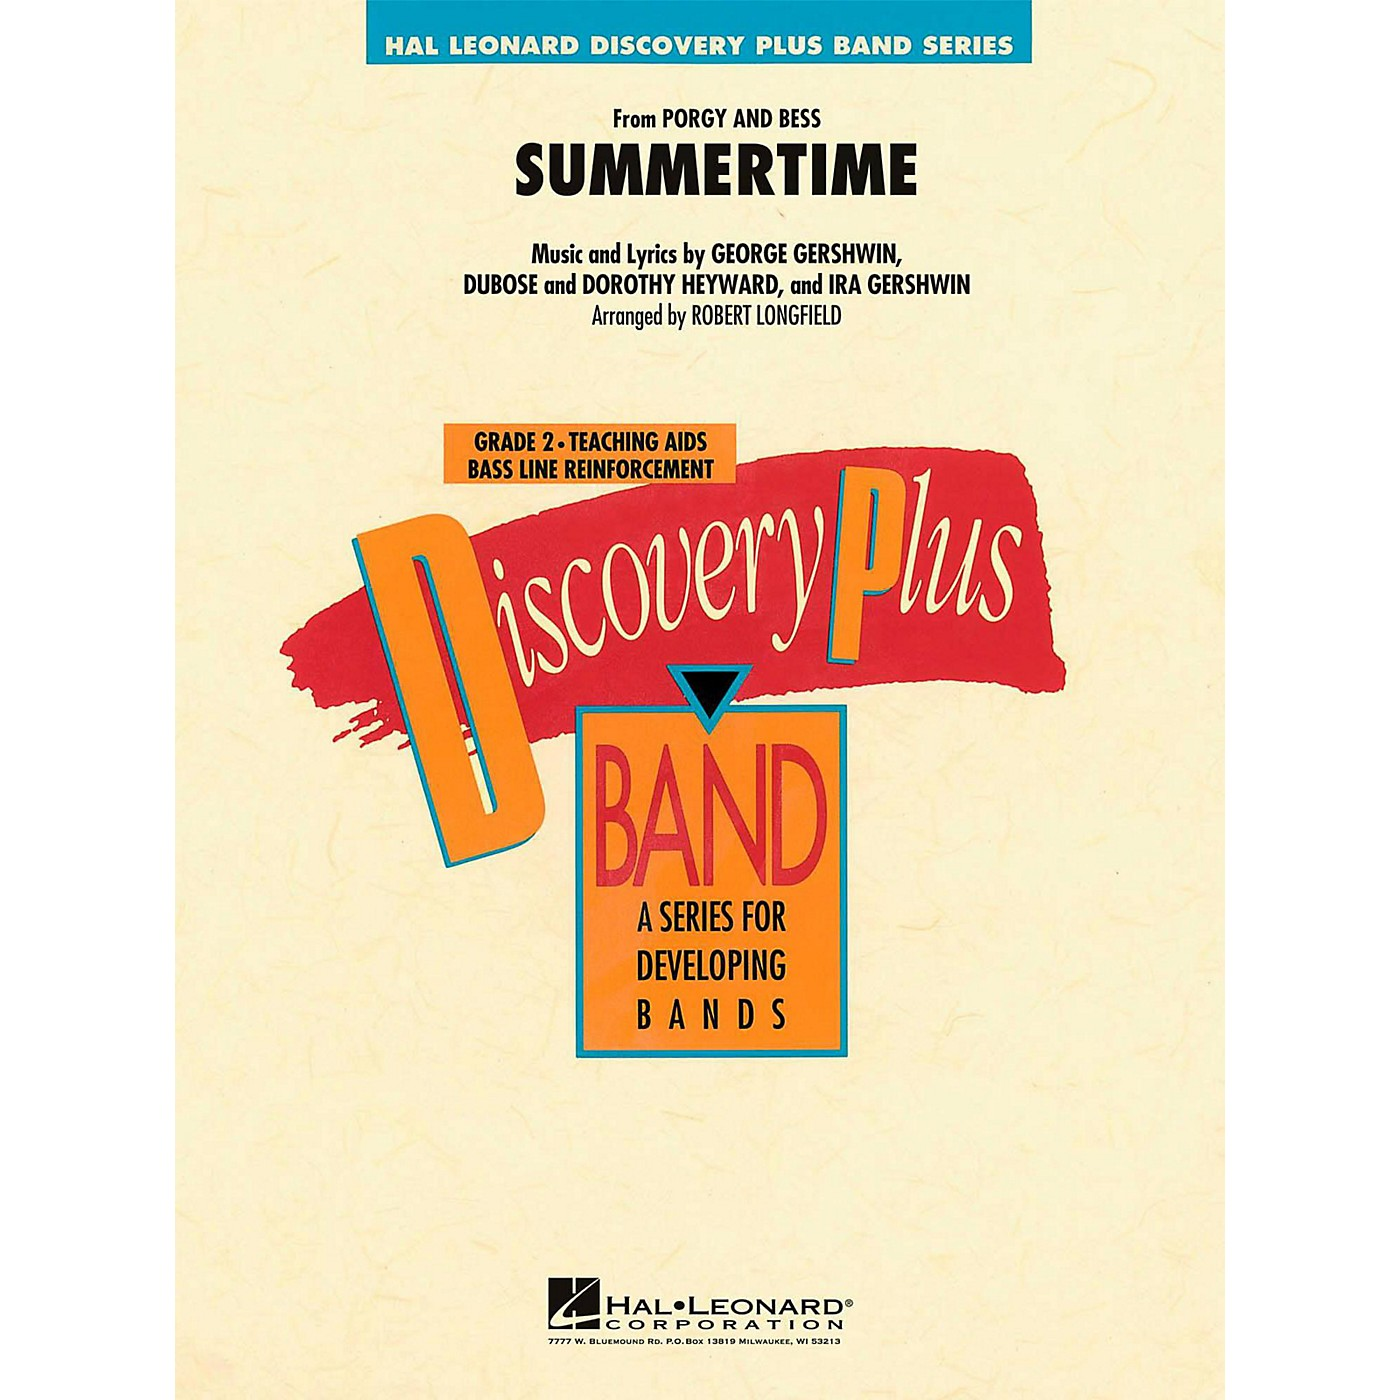 Hal Leonard Summertime (From Porgy and Bess)  - Discovery Plus Concert Band Level 2 thumbnail